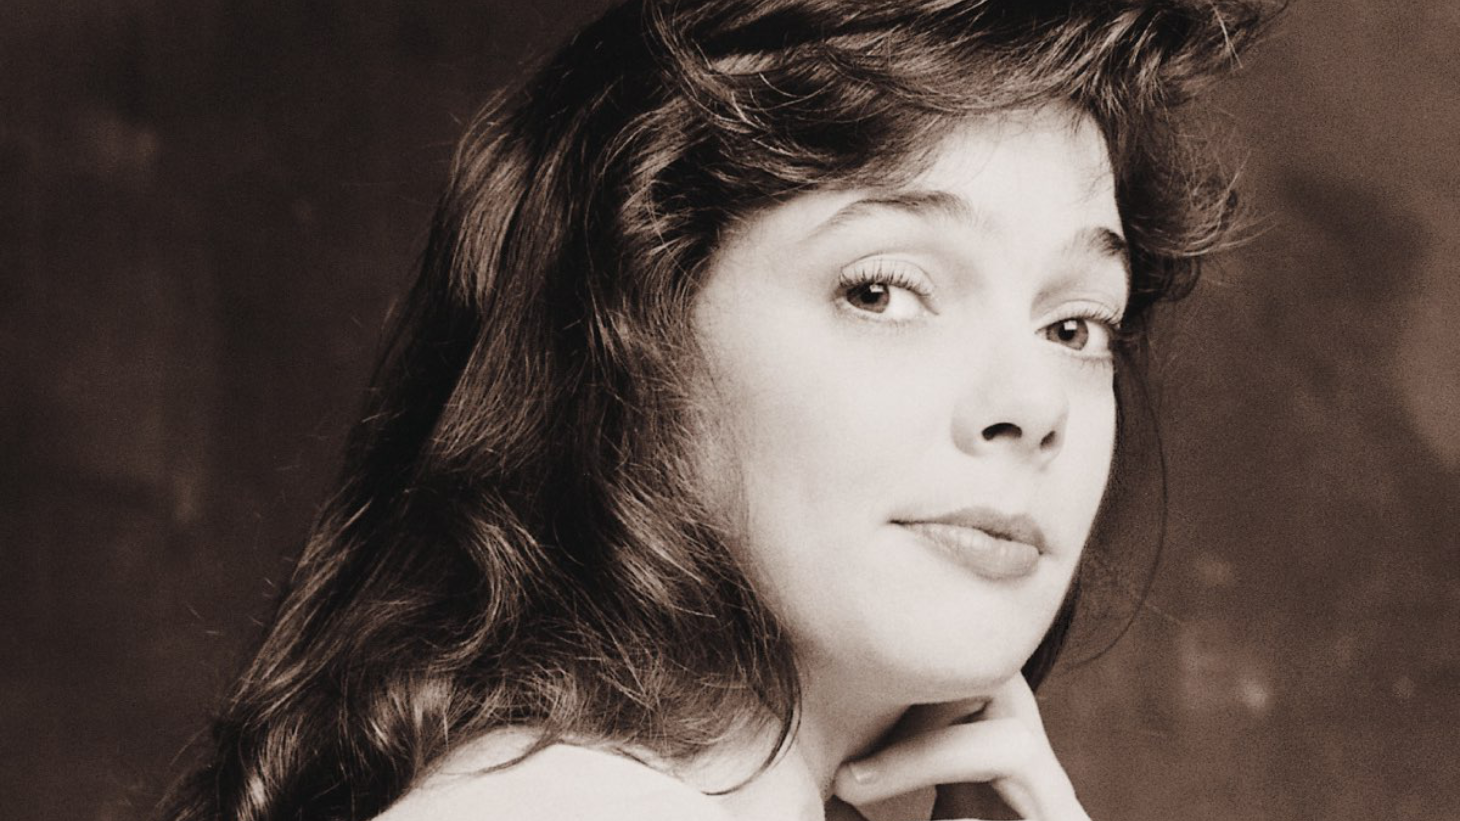 The late singer-songwriter Nanci Griffith in 1988.